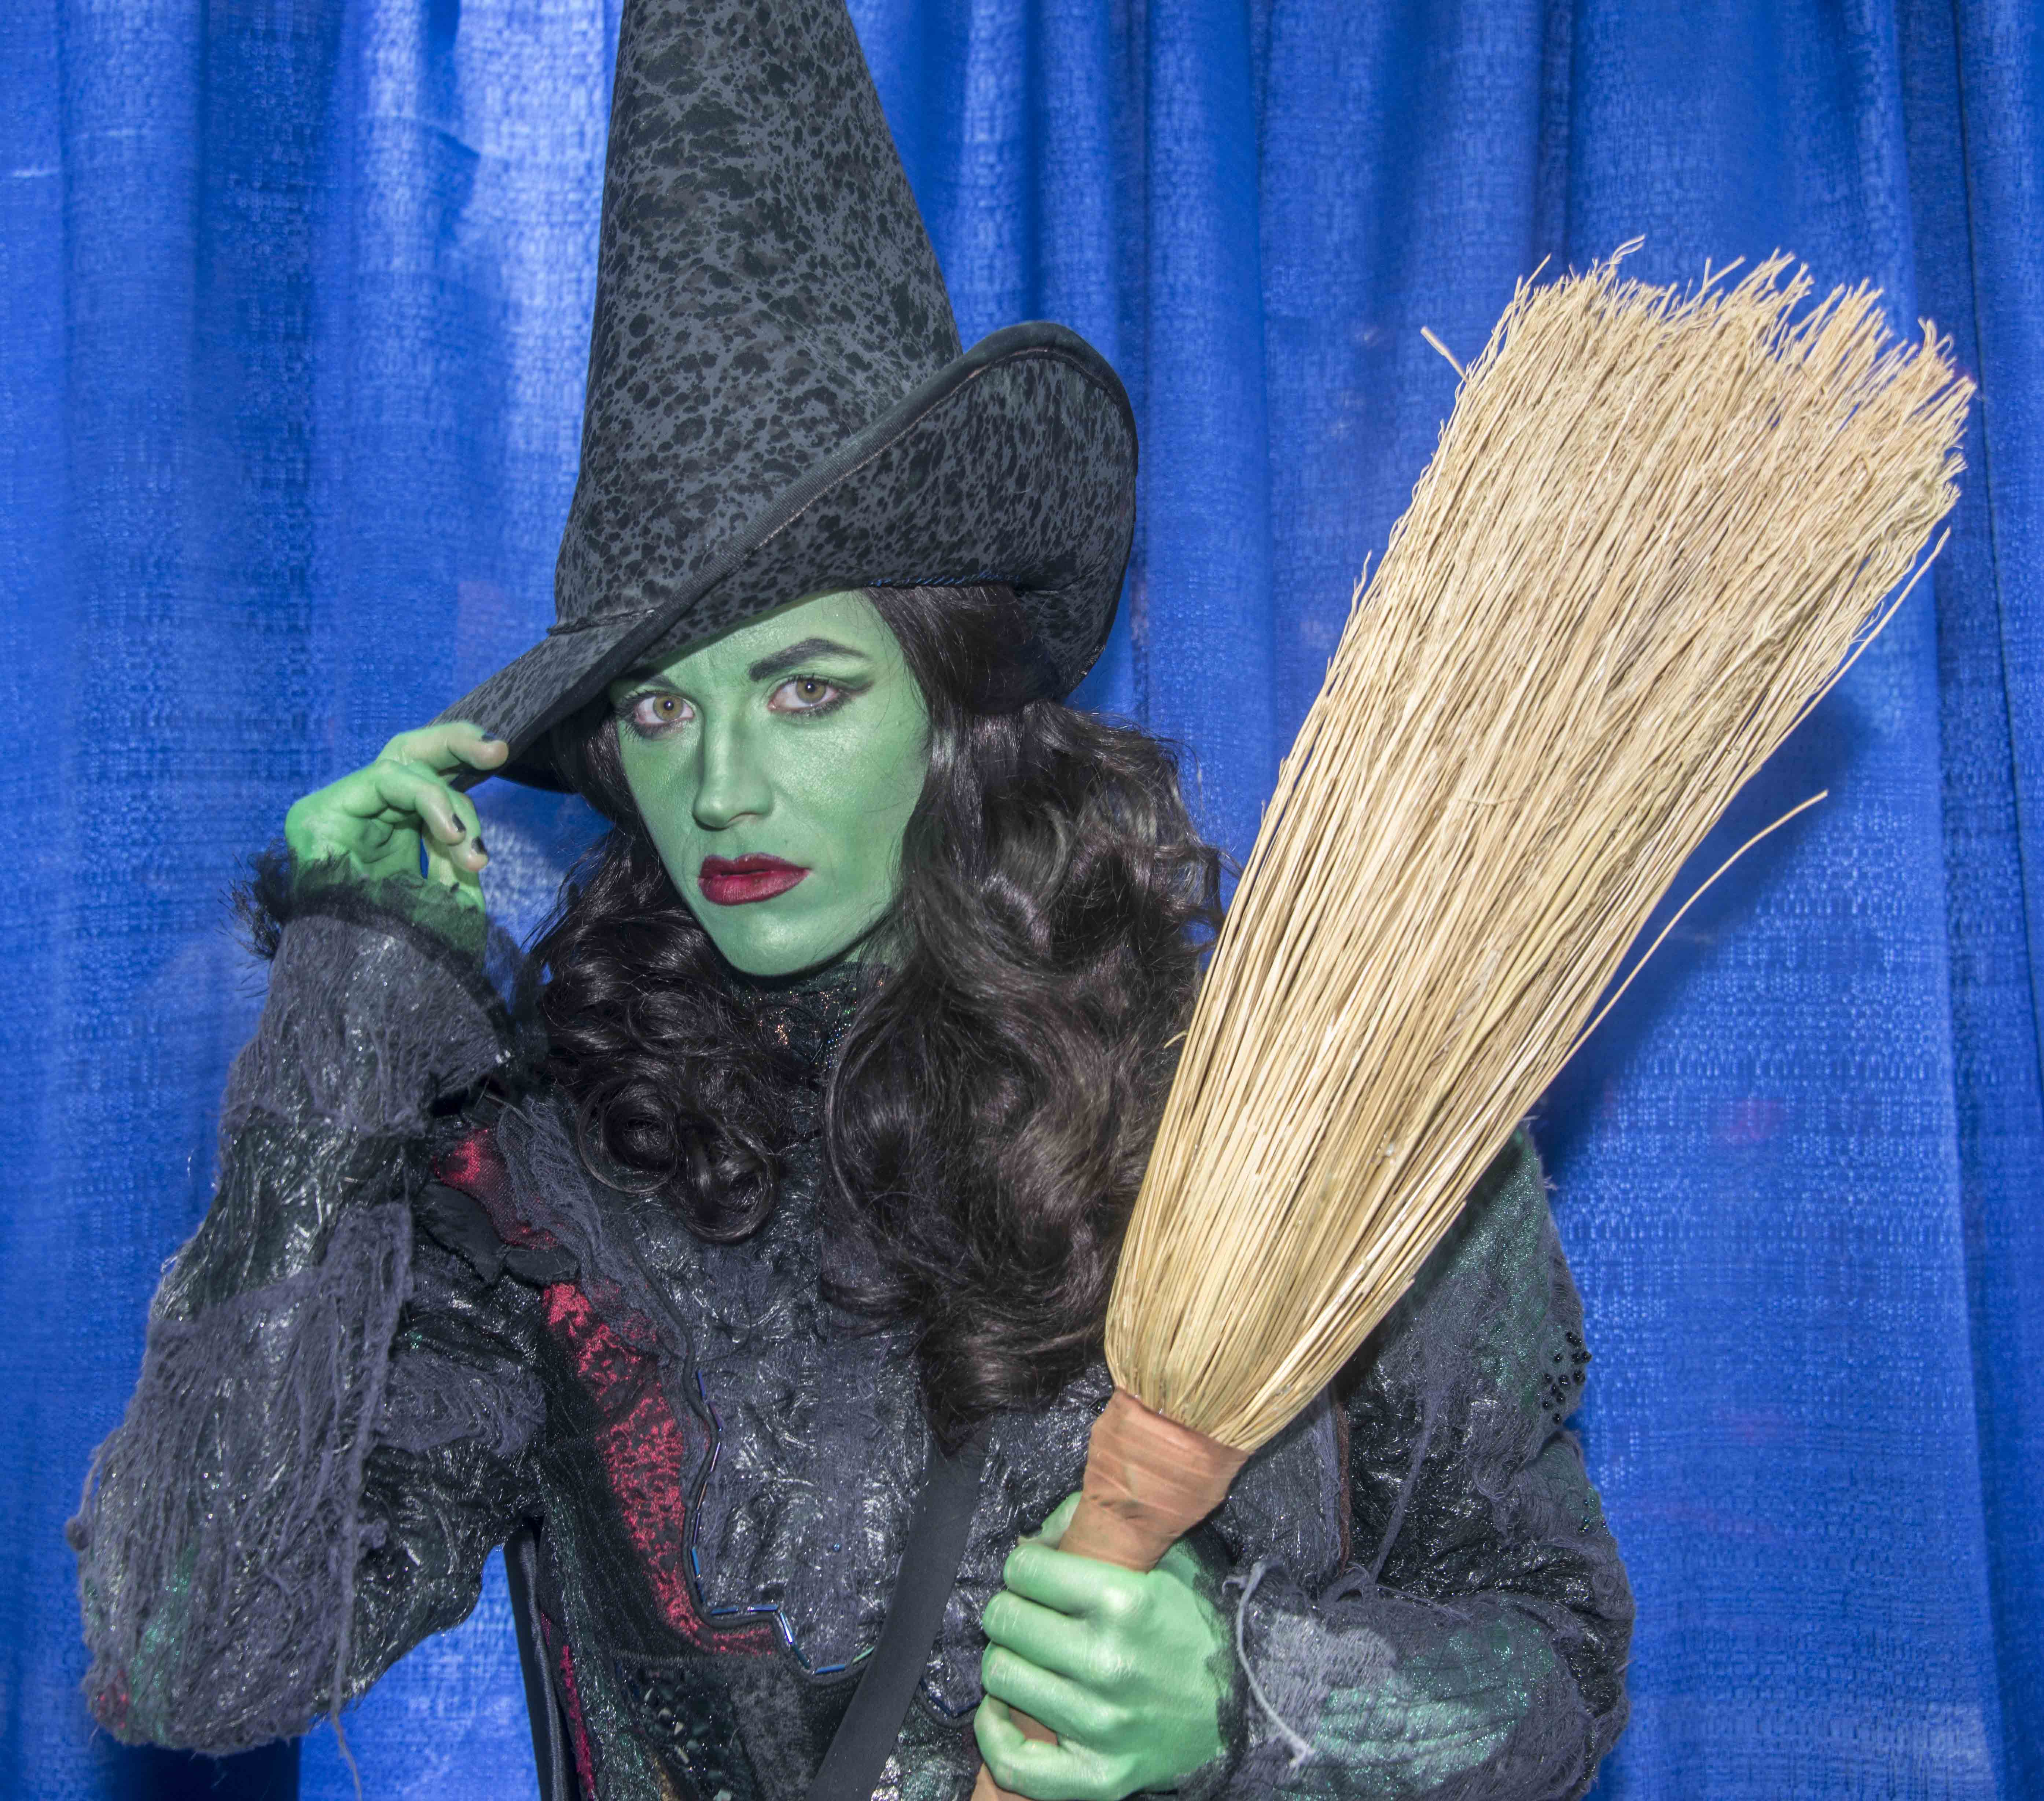 A wicked witch poses for a photo at the event. — Photo by Lawrence Sherwin ©